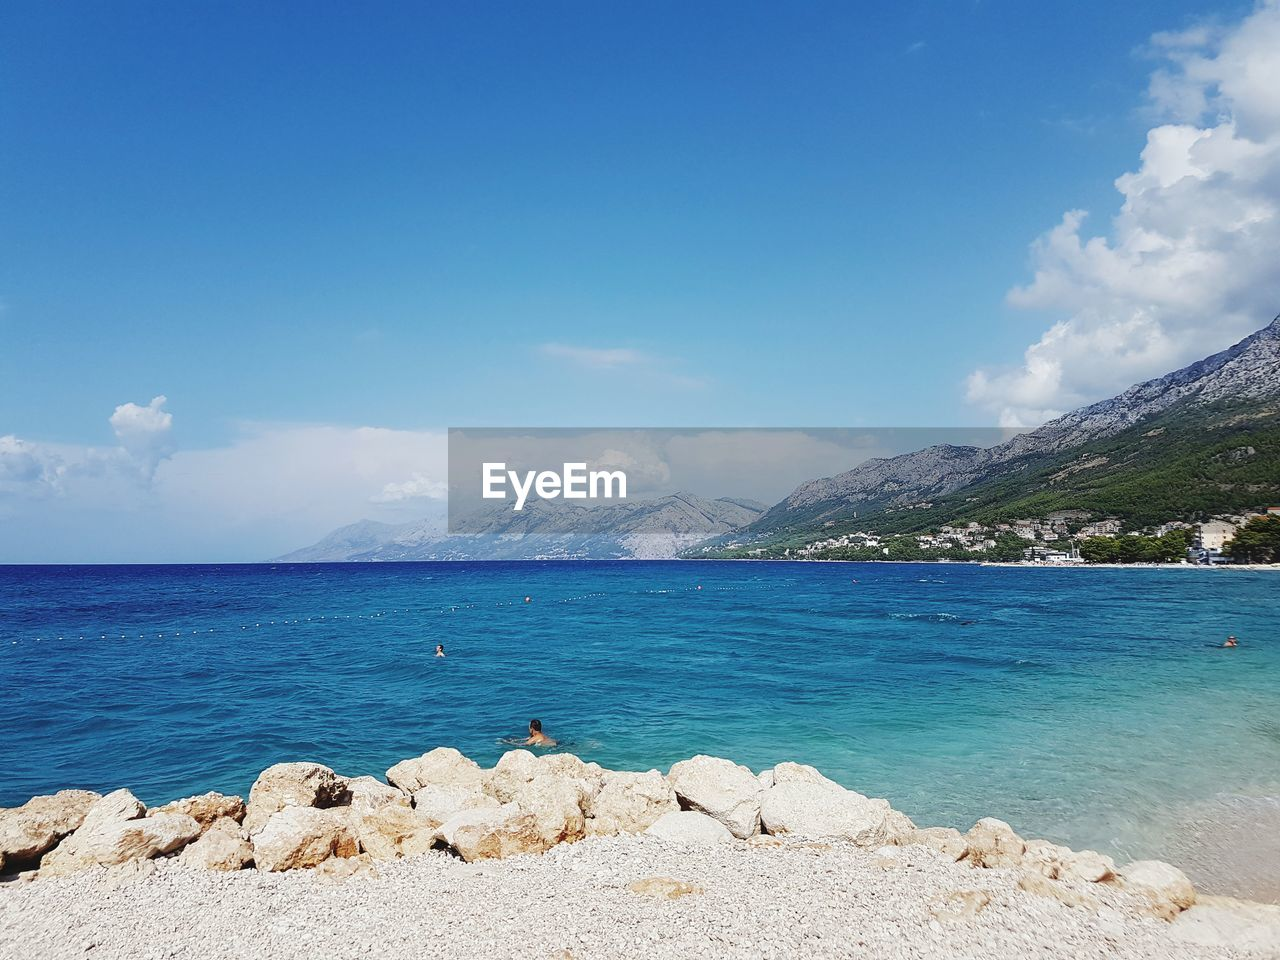 water, sky, sea, beauty in nature, scenics - nature, tranquility, tranquil scene, cloud - sky, mountain, blue, rock, day, nature, beach, rock - object, solid, land, idyllic, no people, outdoors